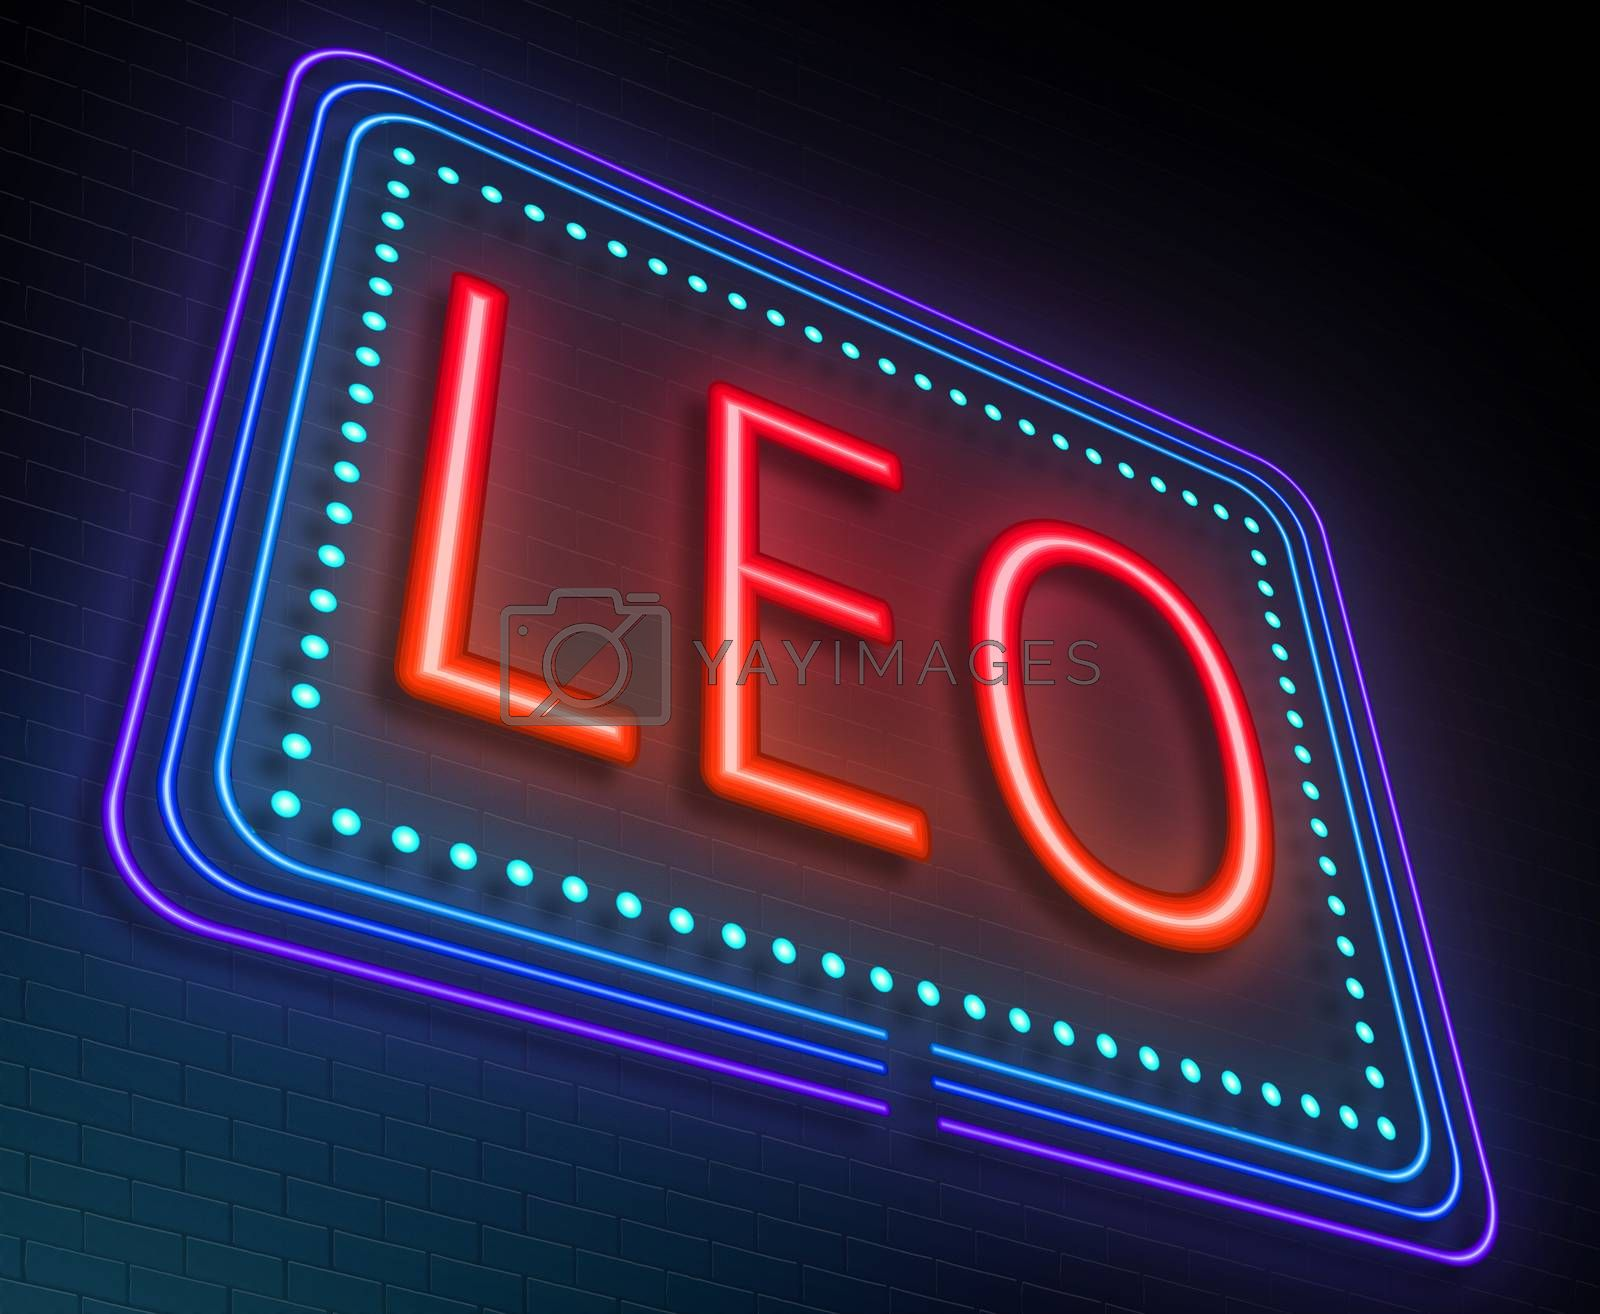 Illustration depicting an illuminated neon sign with a leo concept.